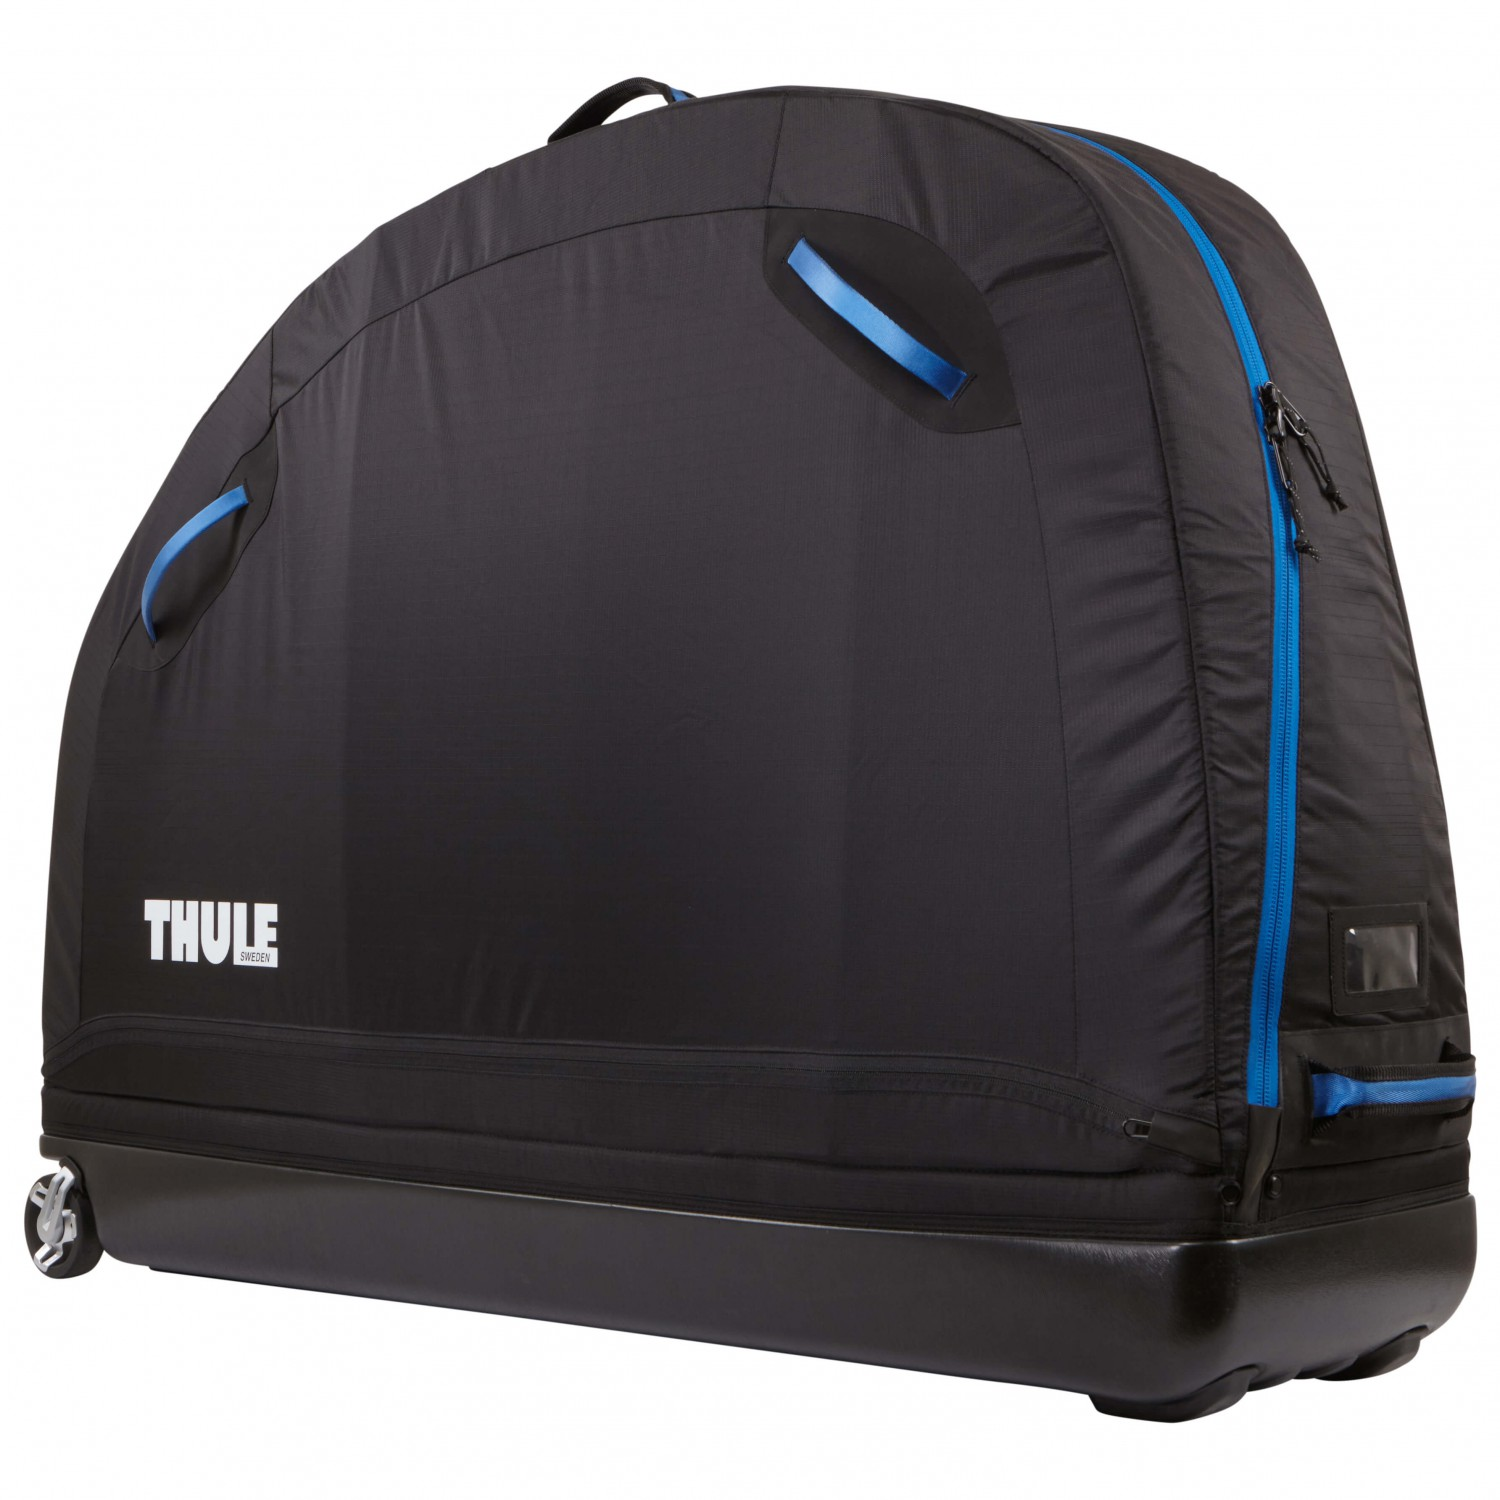 thule roundtrip pro xt fahrradh lle online kaufen. Black Bedroom Furniture Sets. Home Design Ideas